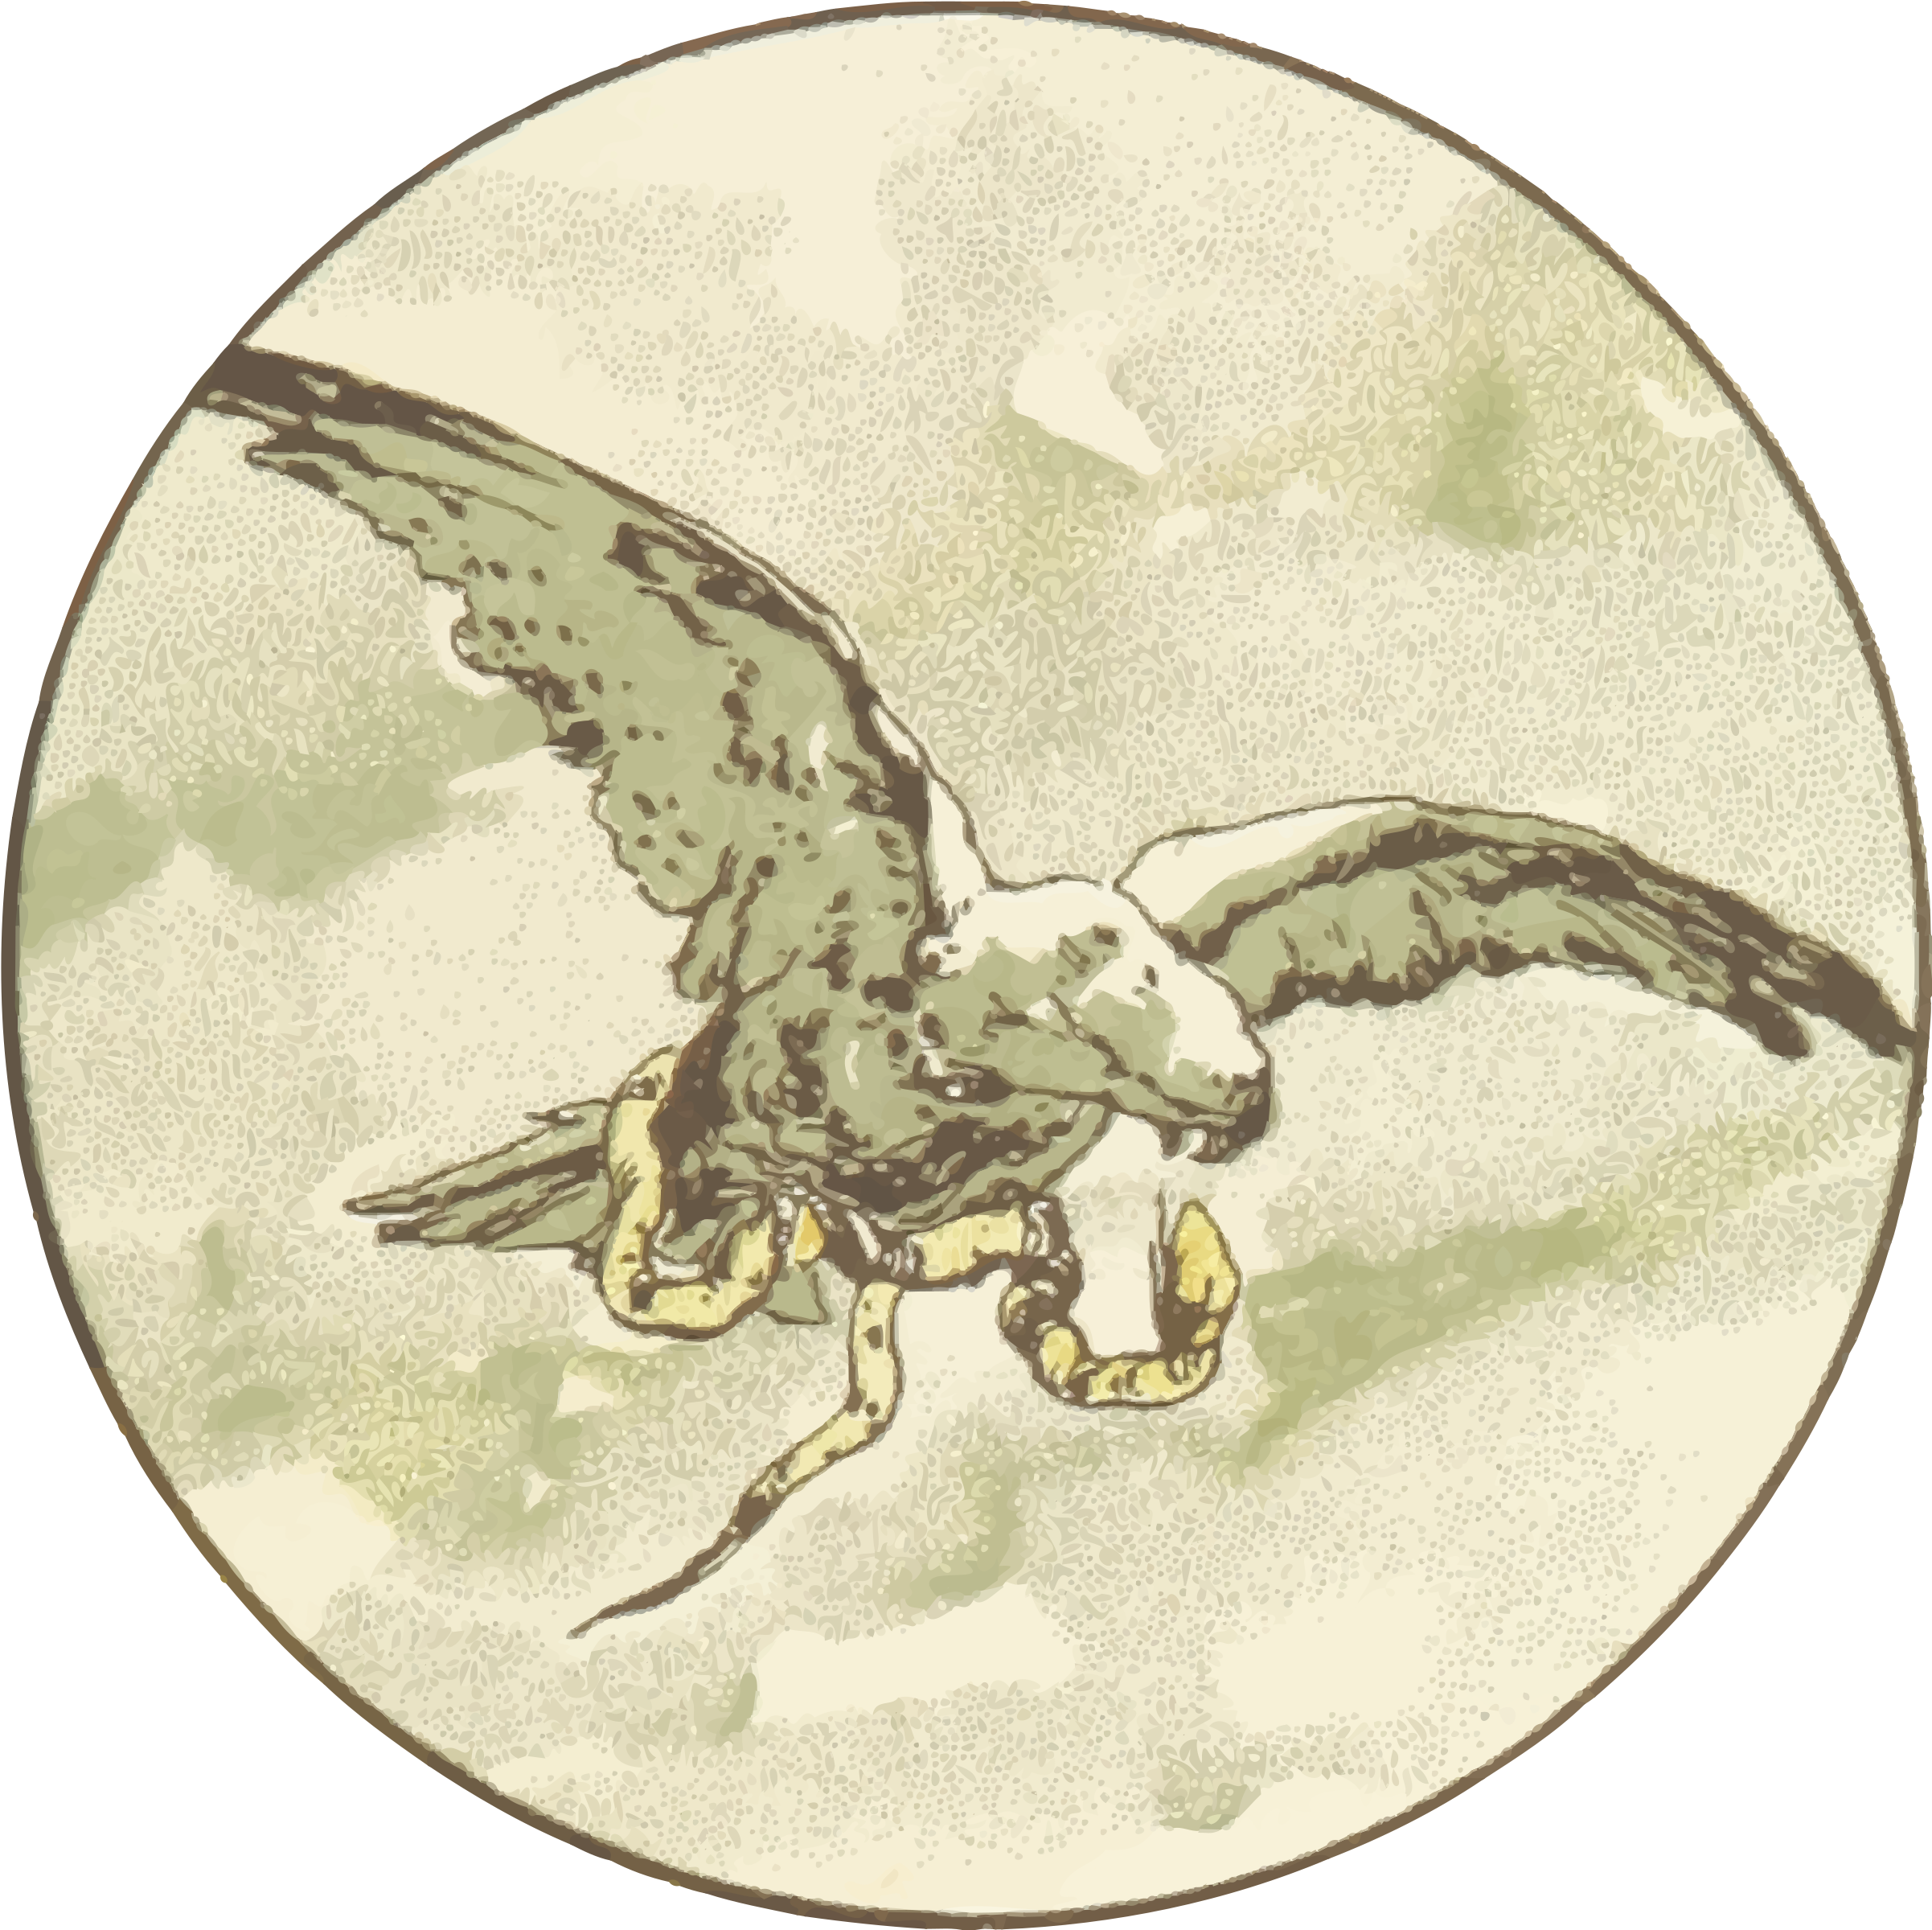 Eagle and snake by Firkin